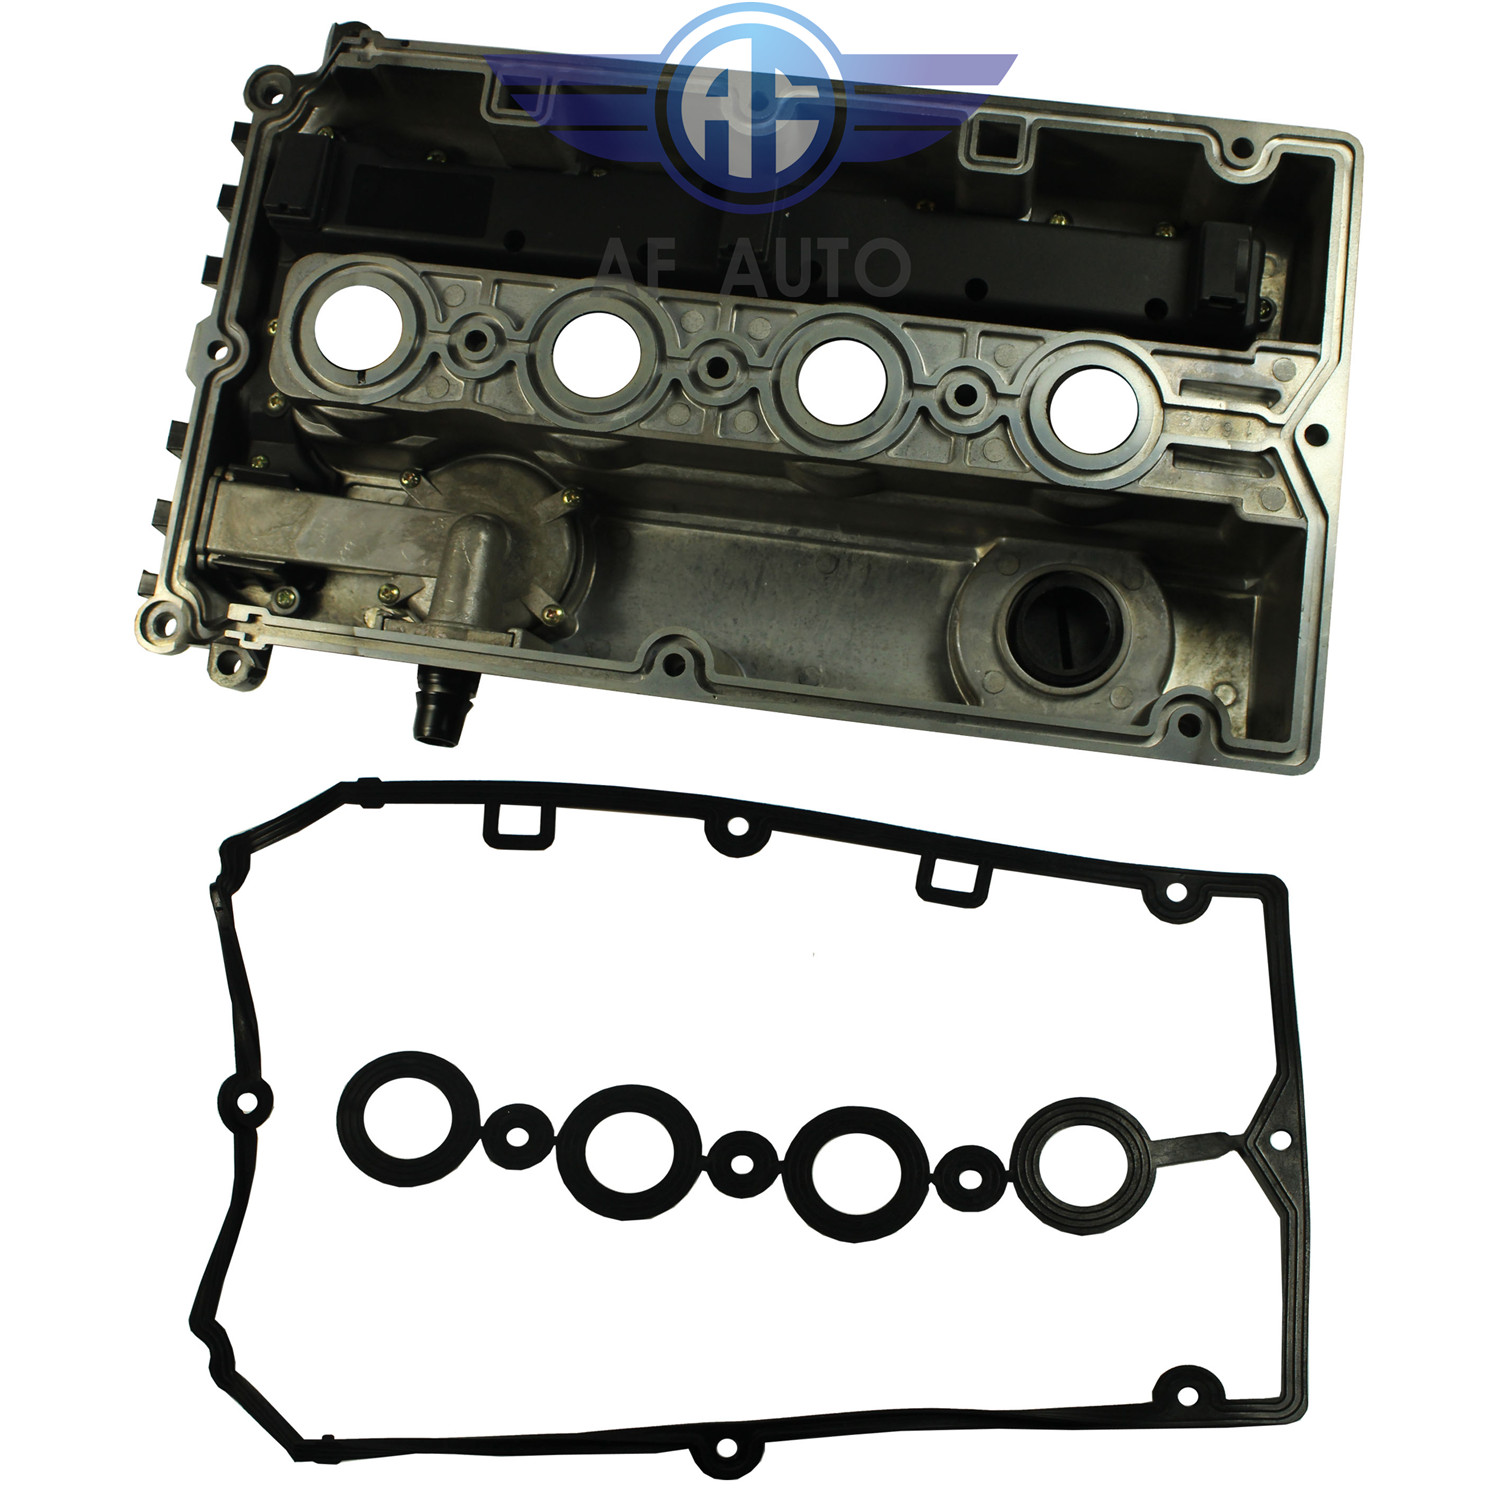 New Engine Valve Cover Camshaft Rocker Cover For GM Chevrolet Cruze 55564395